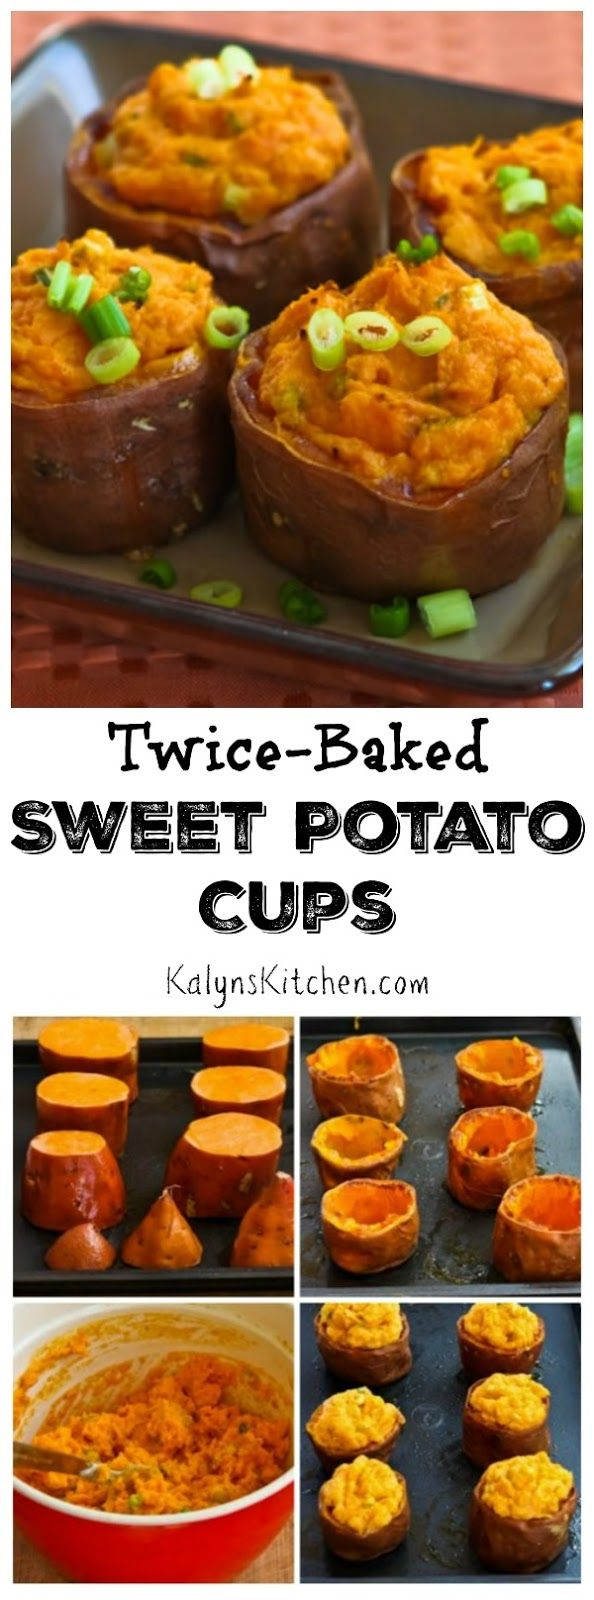 Twice-Baked Sweet Potato Cups with Sour Cream, Chipotle, and Lime are delicious for a special meal.  [found on KalynsKitchen.com]